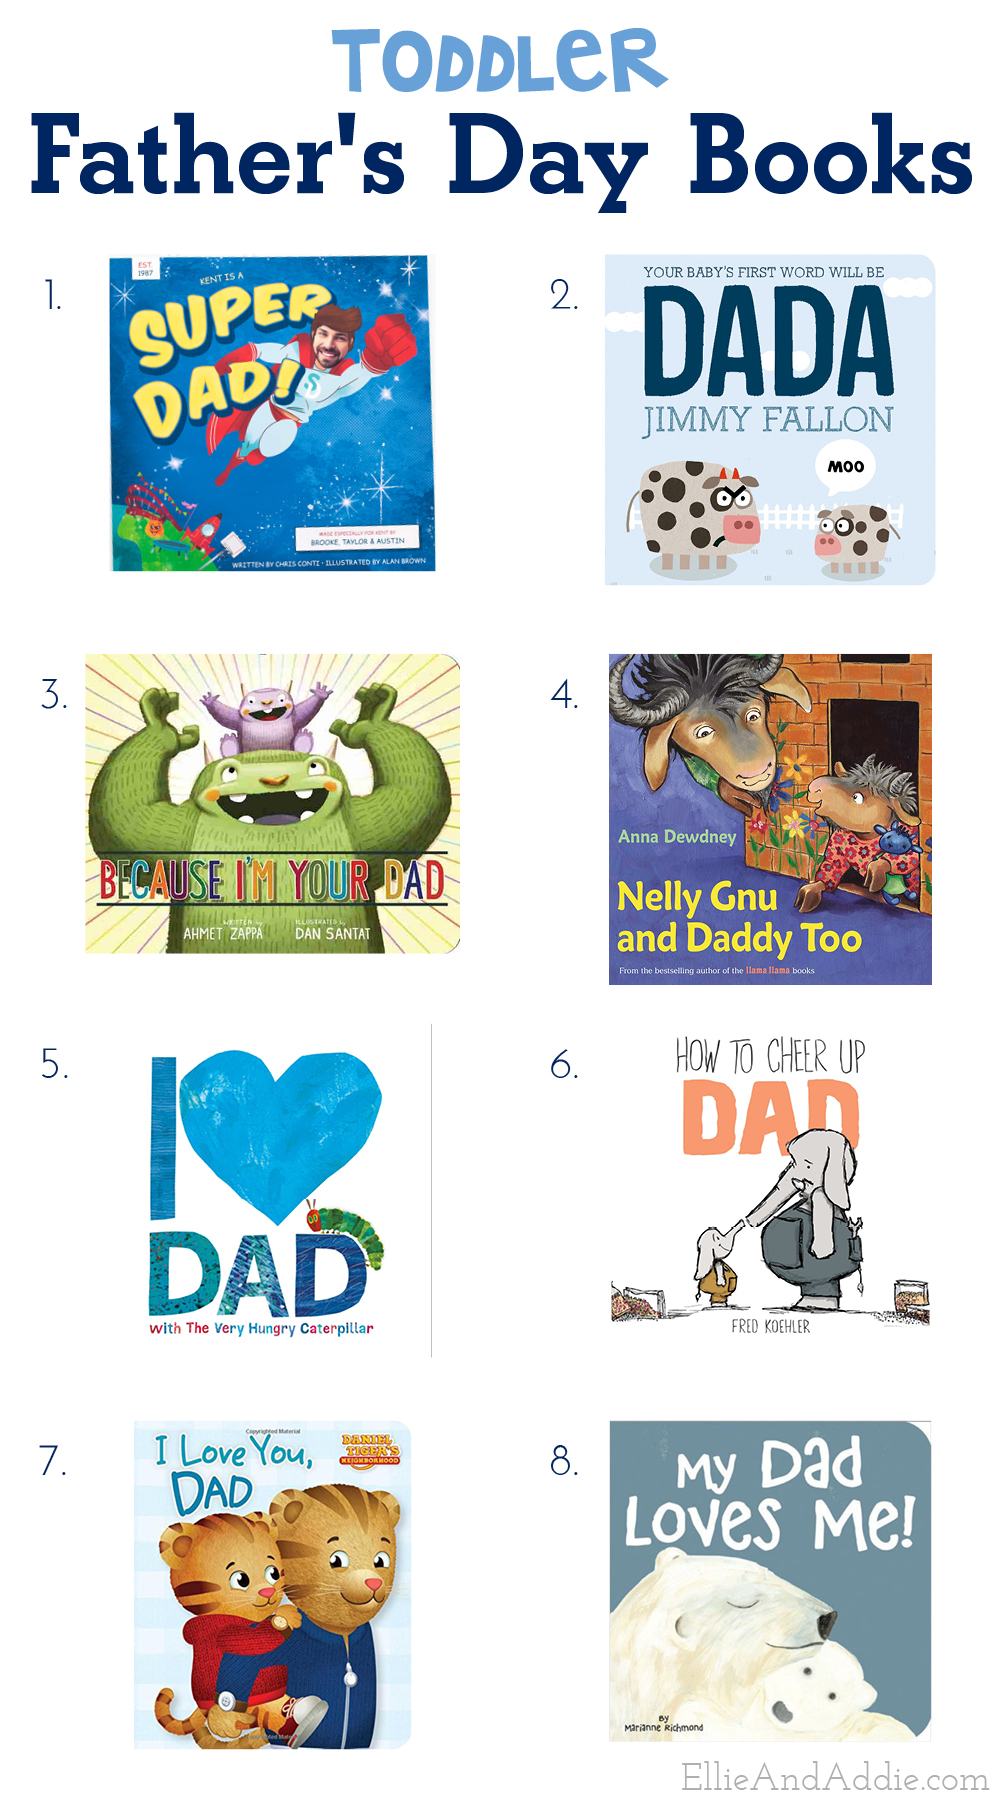 Toddler Father's Day Books - All the best books for toddlers to read with their Dad! | Ellie And Addie